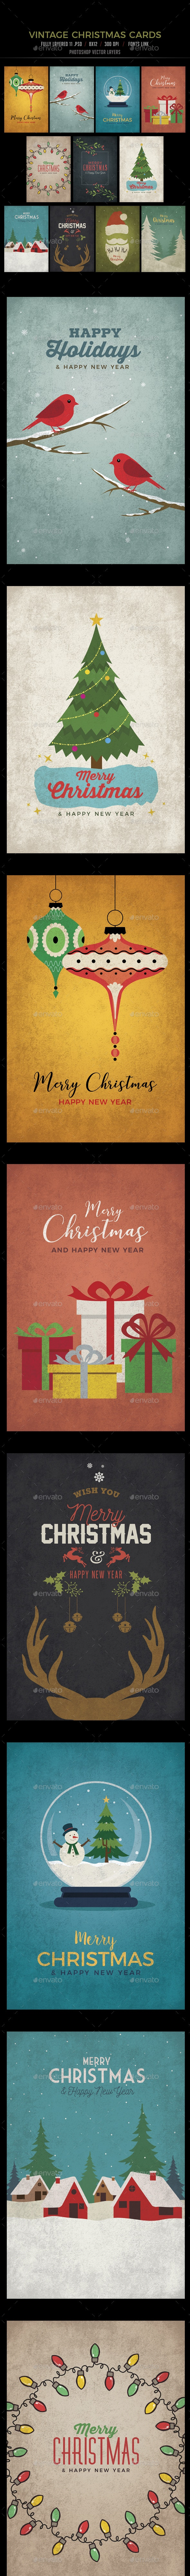 11 Vintage Christmas Card / Backgrounds - Backgrounds Graphics